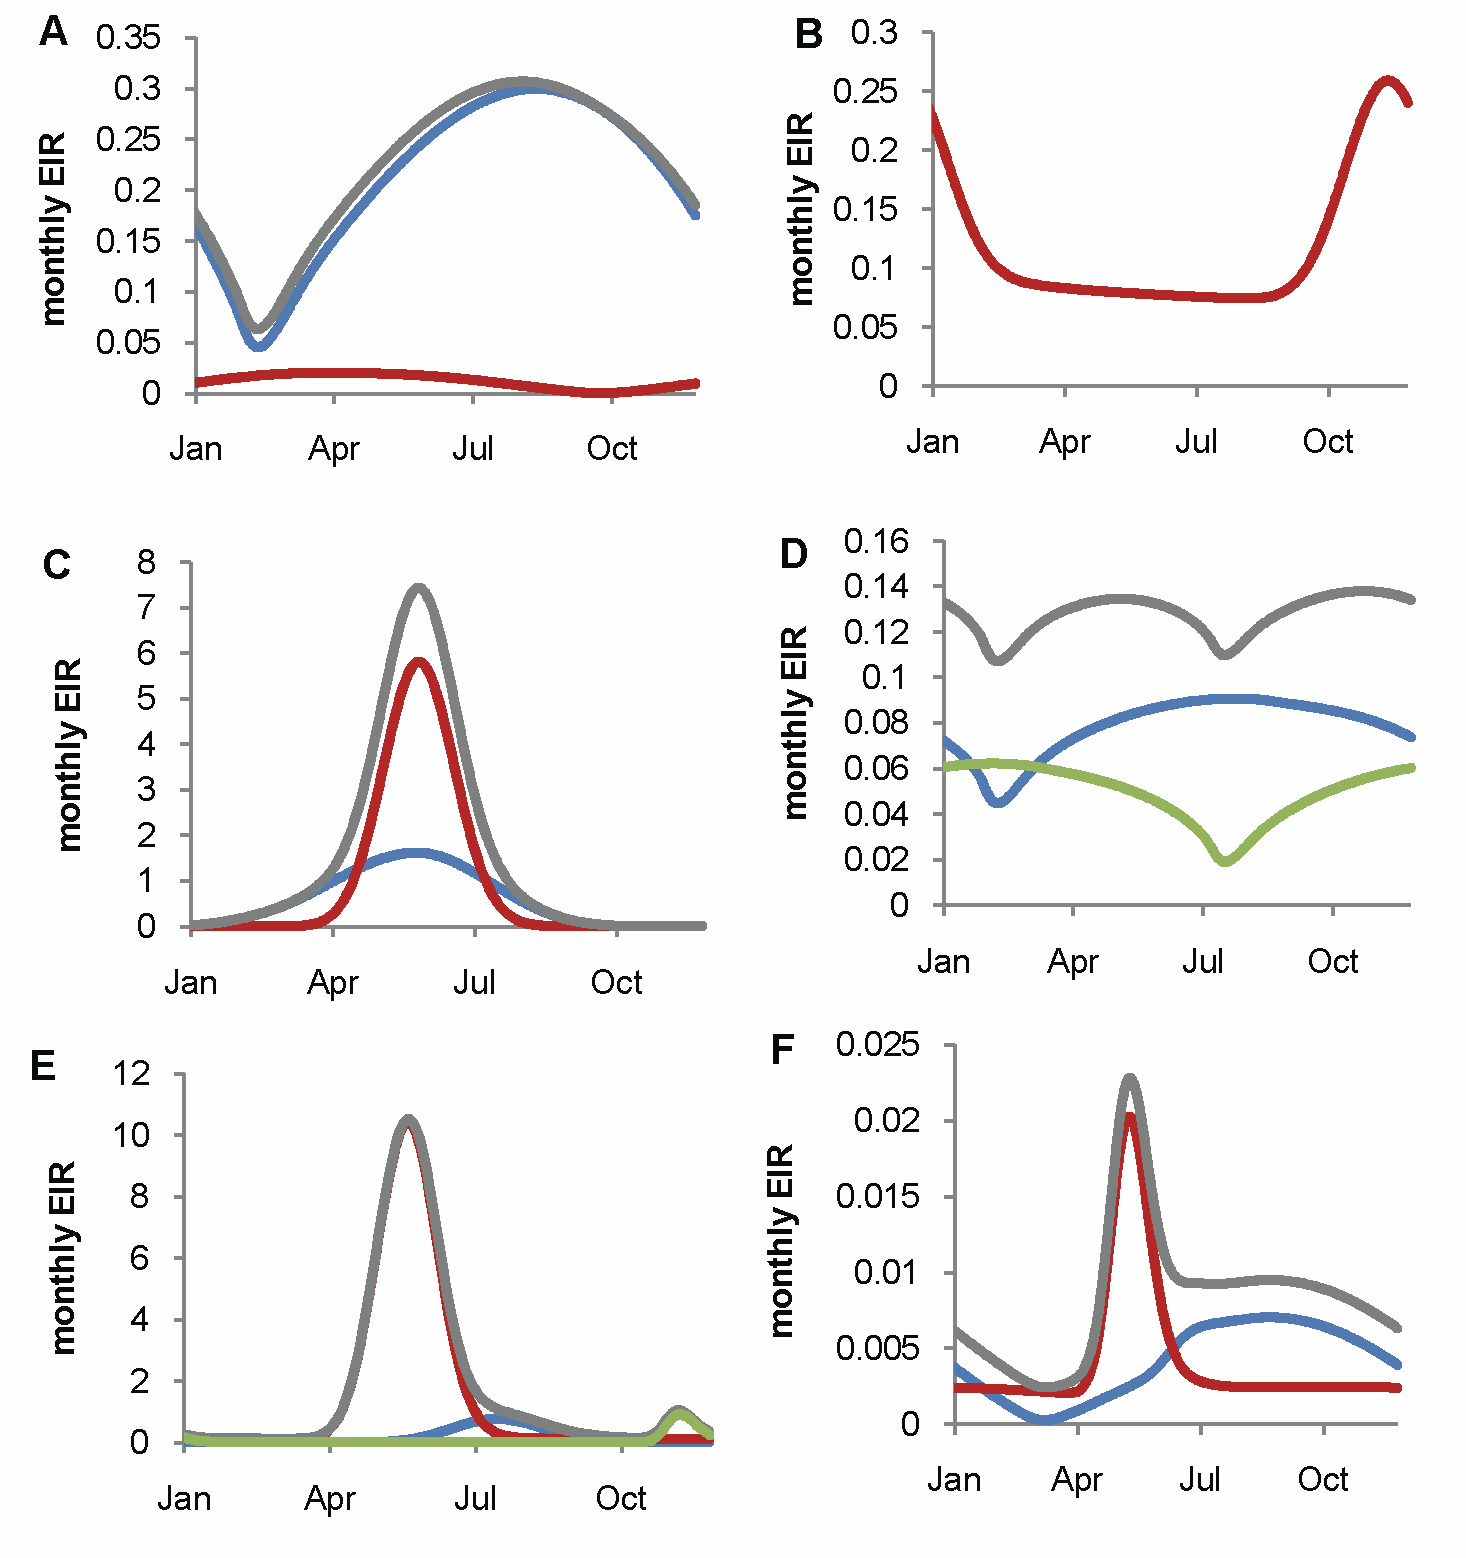 Fitted seasonal profile of EIR for the six transmission settings by vector species.